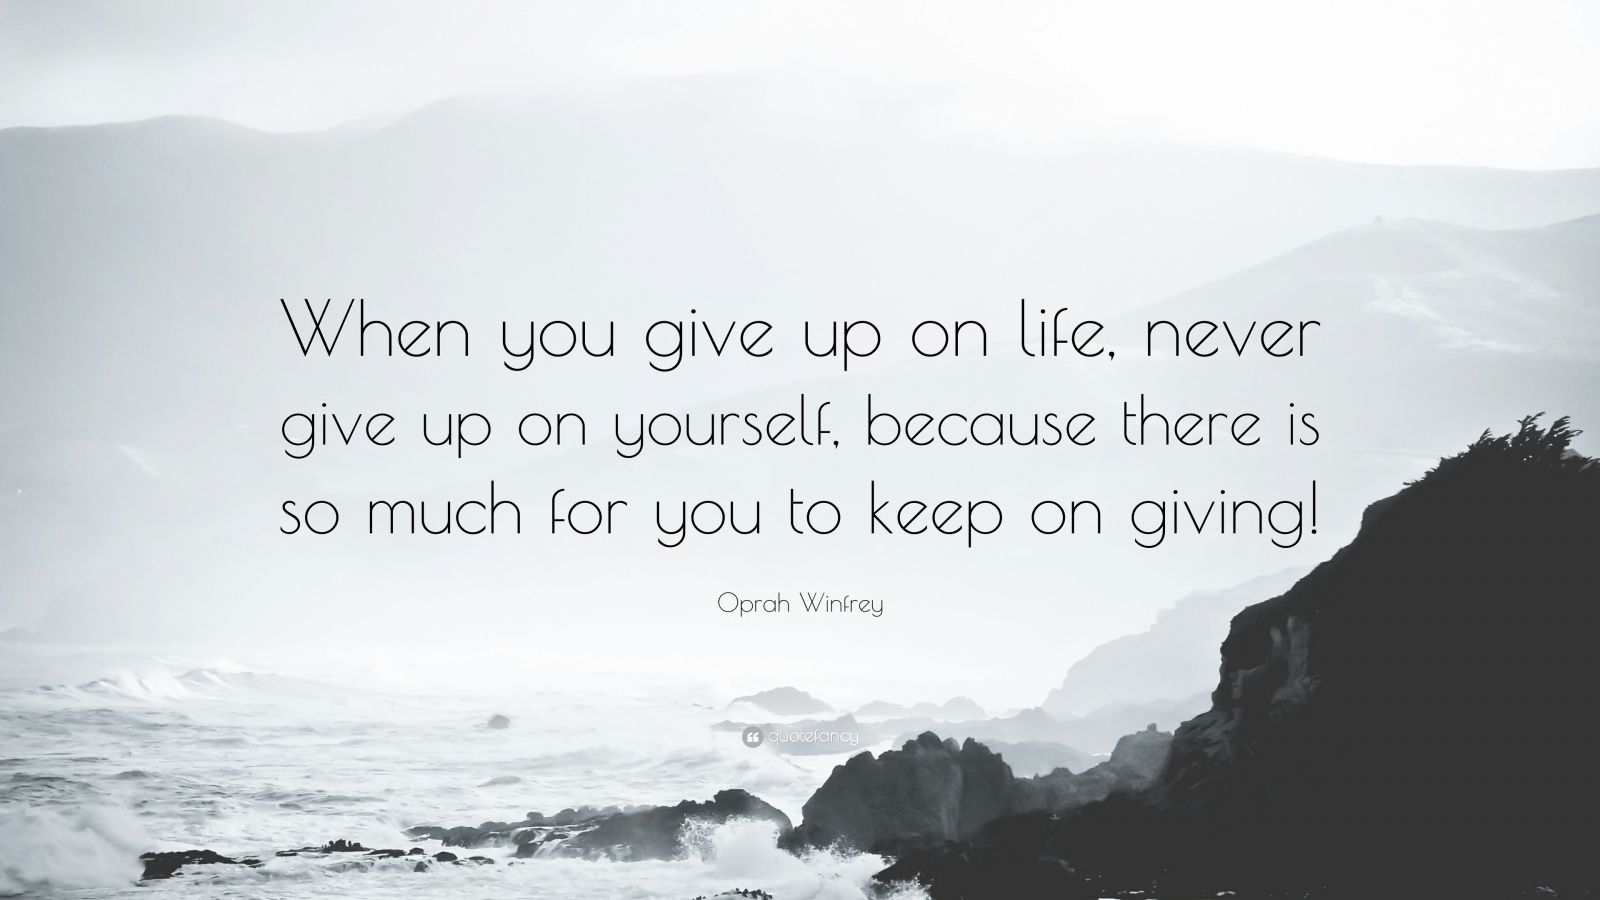 """Oprah Winfrey Quote: """"When you give up on life, never give up on yourself, because there is so much for you to keep on giving!"""""""